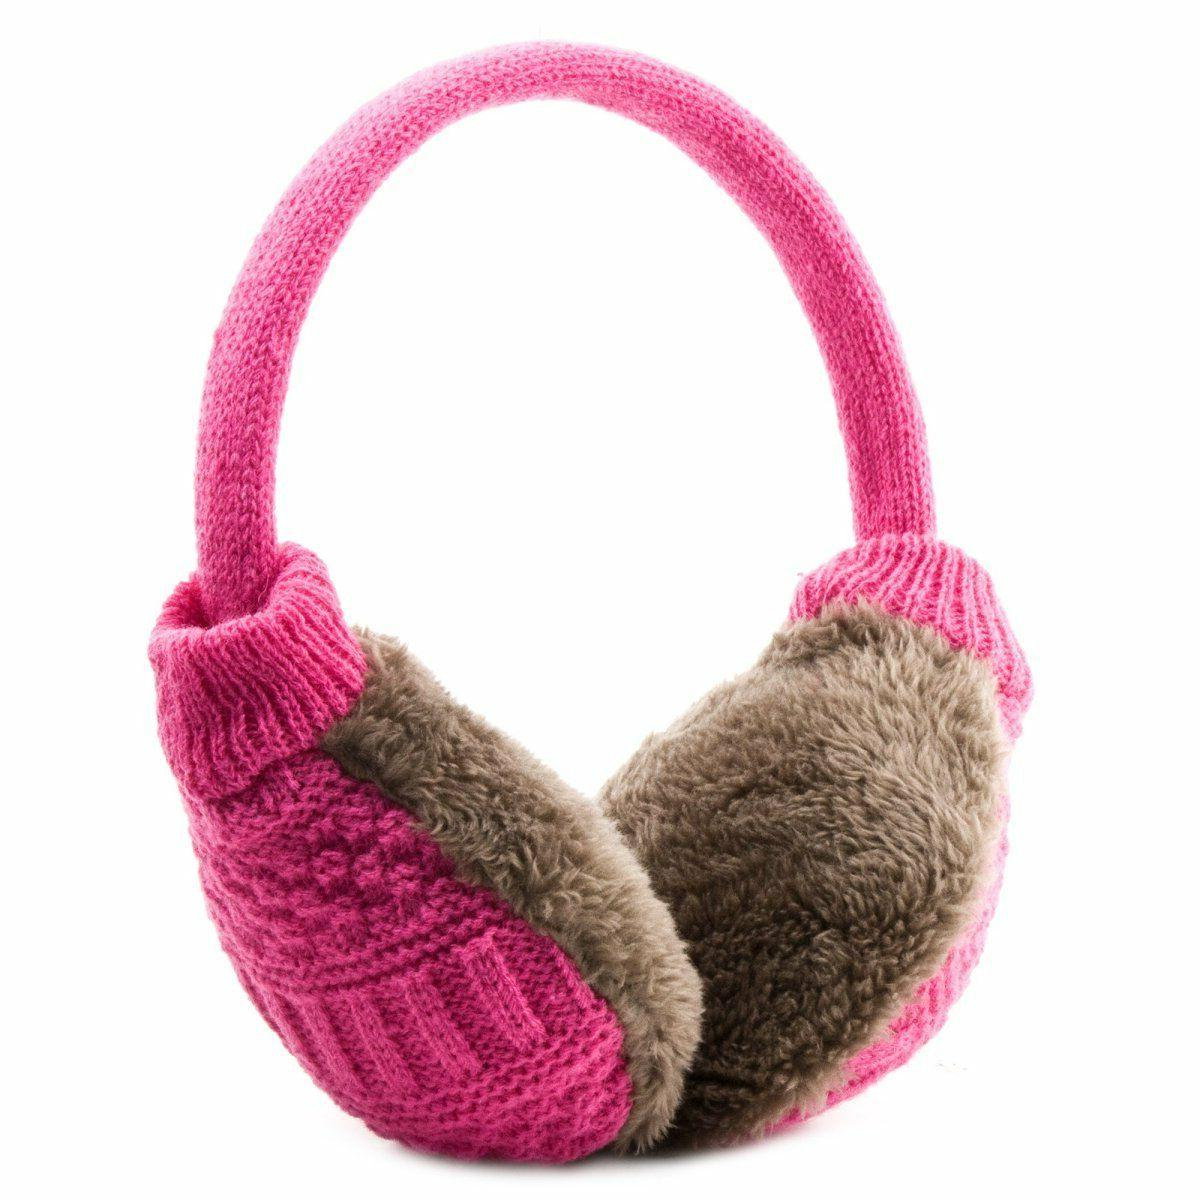 Metog Knitted Removable Warm Winter Warmer